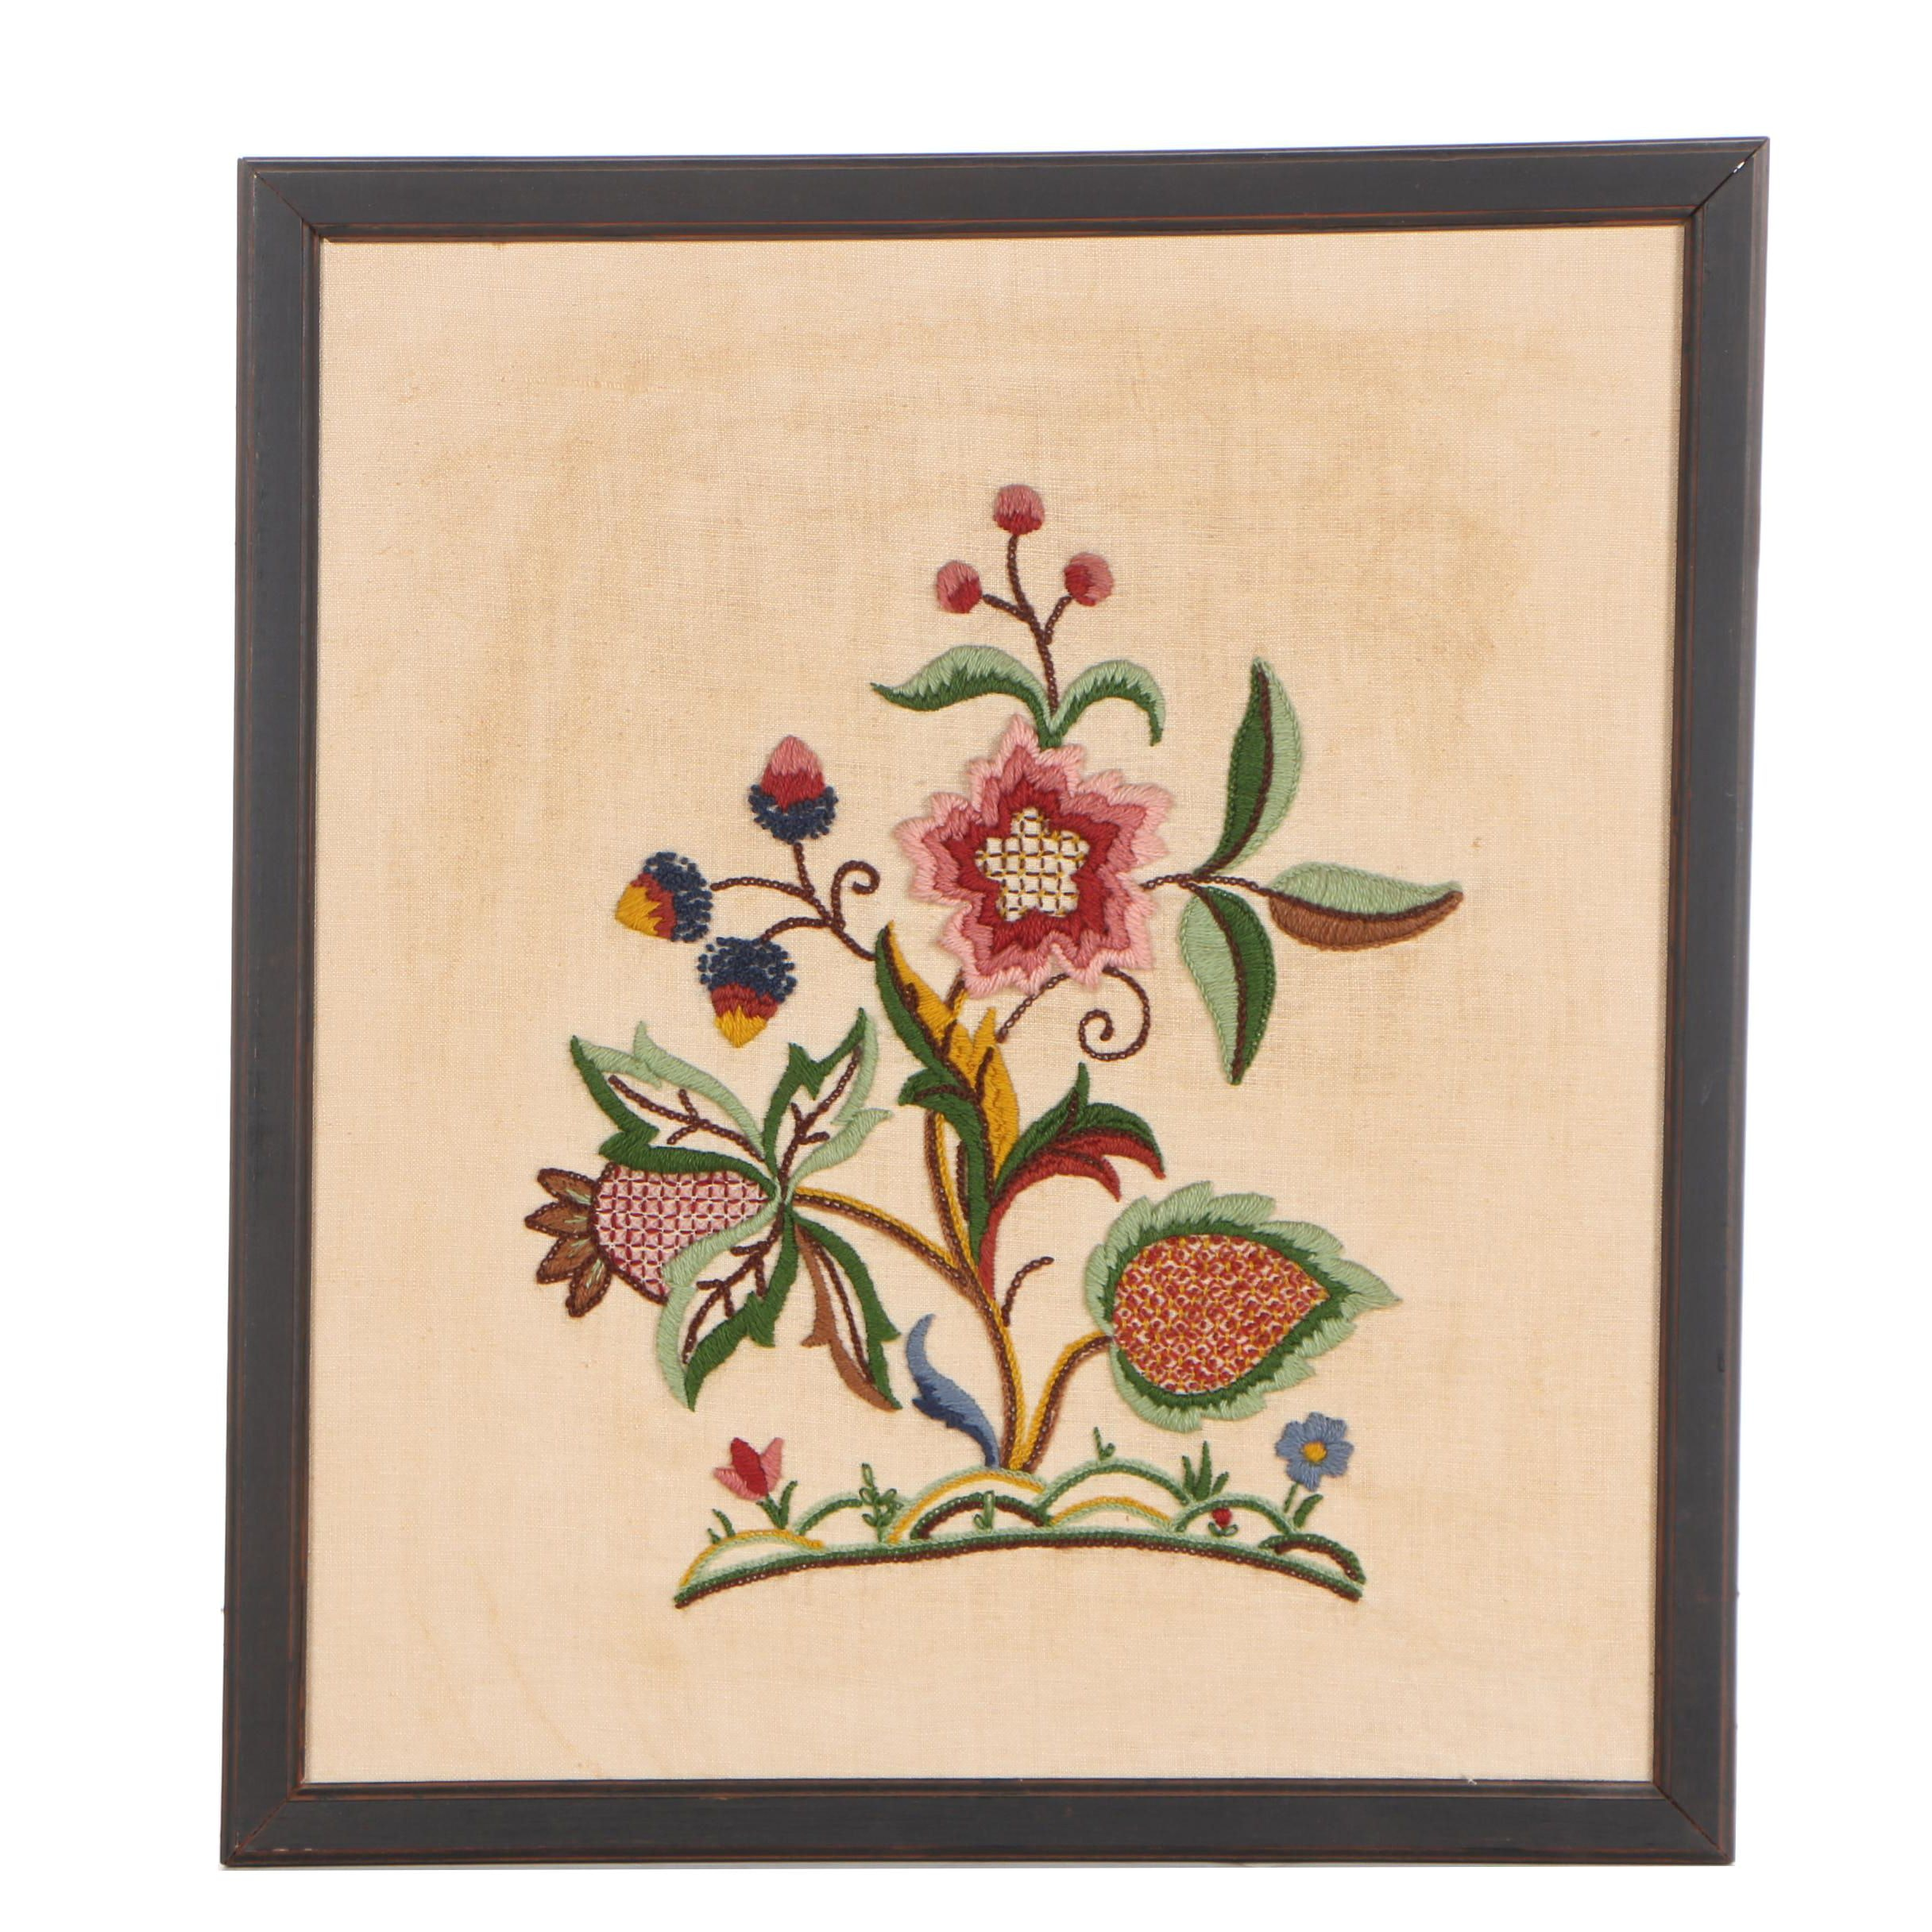 Crewel Work Floral Wall Hanging